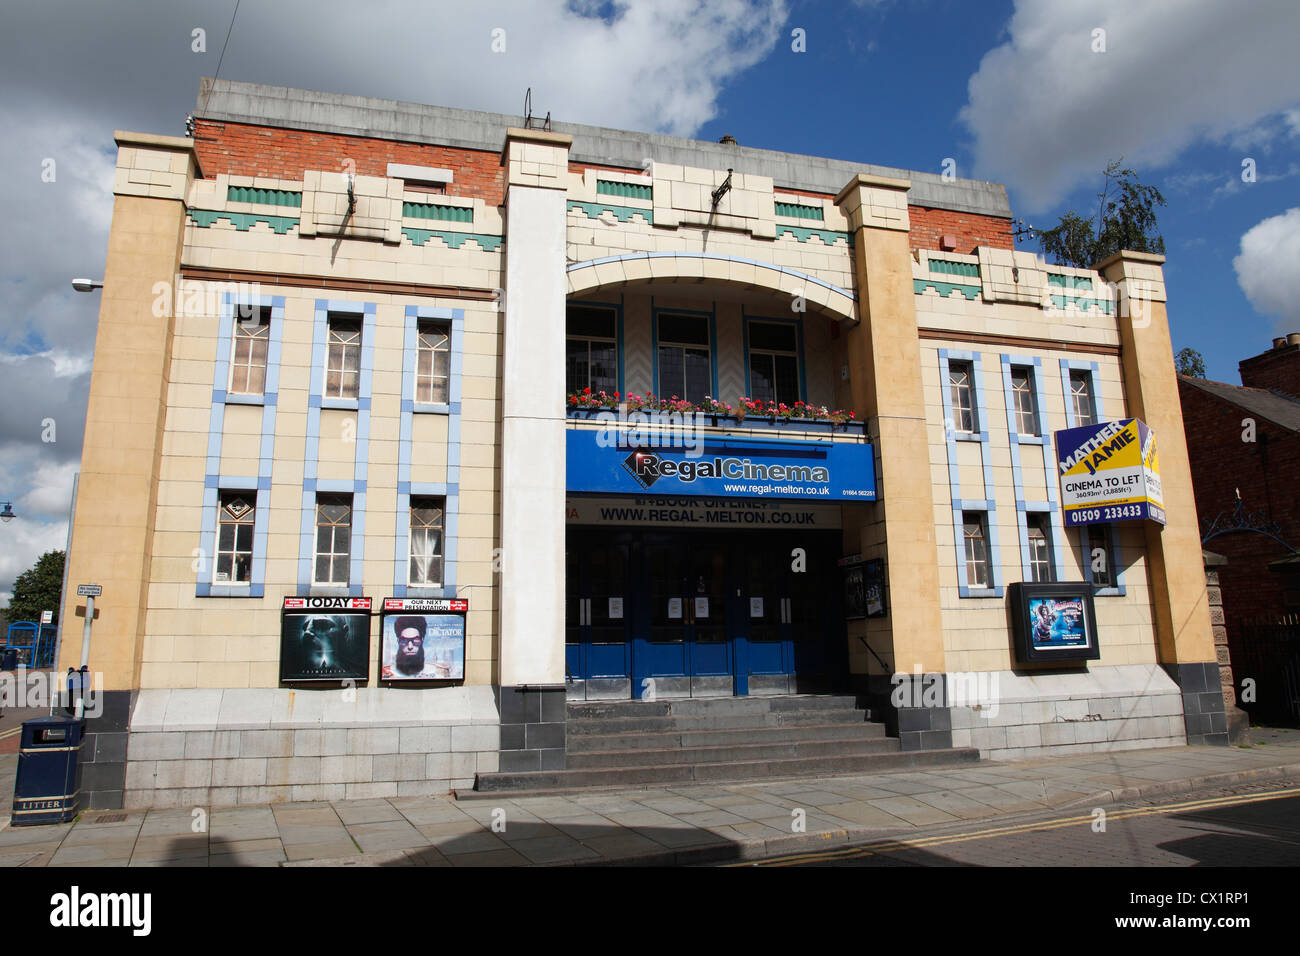 El Regal Cinema, Melton Mowbray, Leicestershire, Inglaterra, Reino Unido. Imagen De Stock